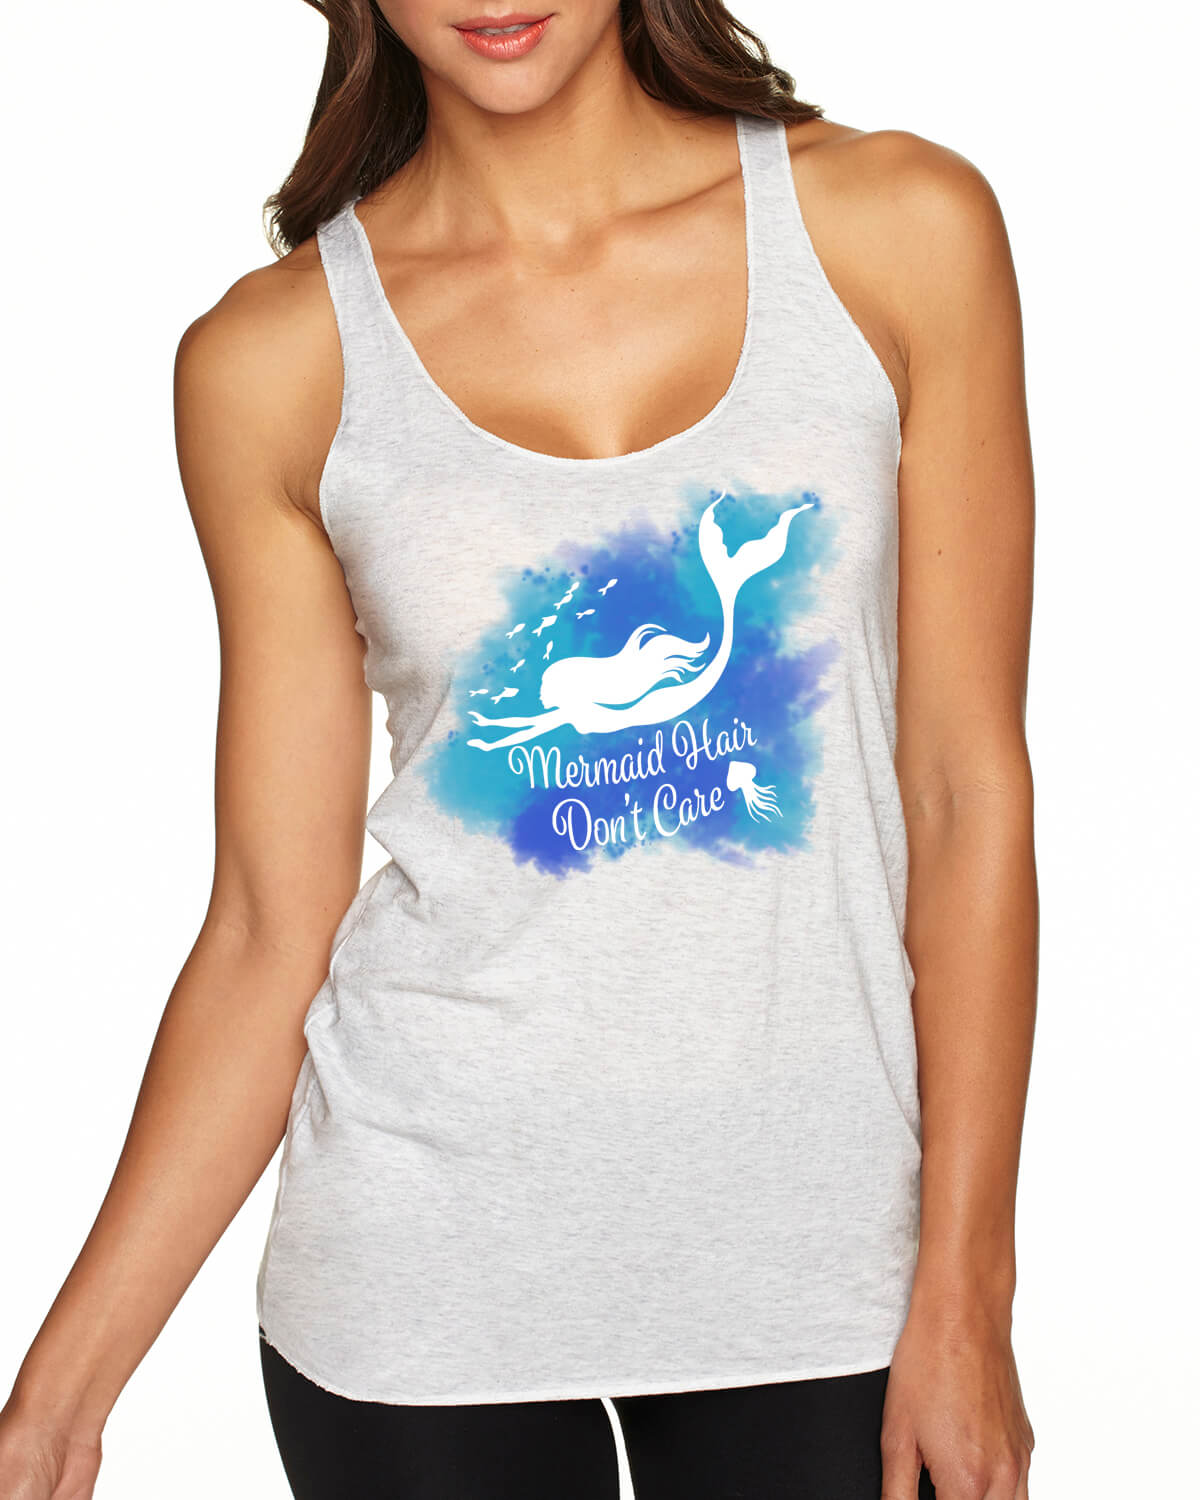 Mermaid Hair, Don't Care Racer-back tank top (heather white)